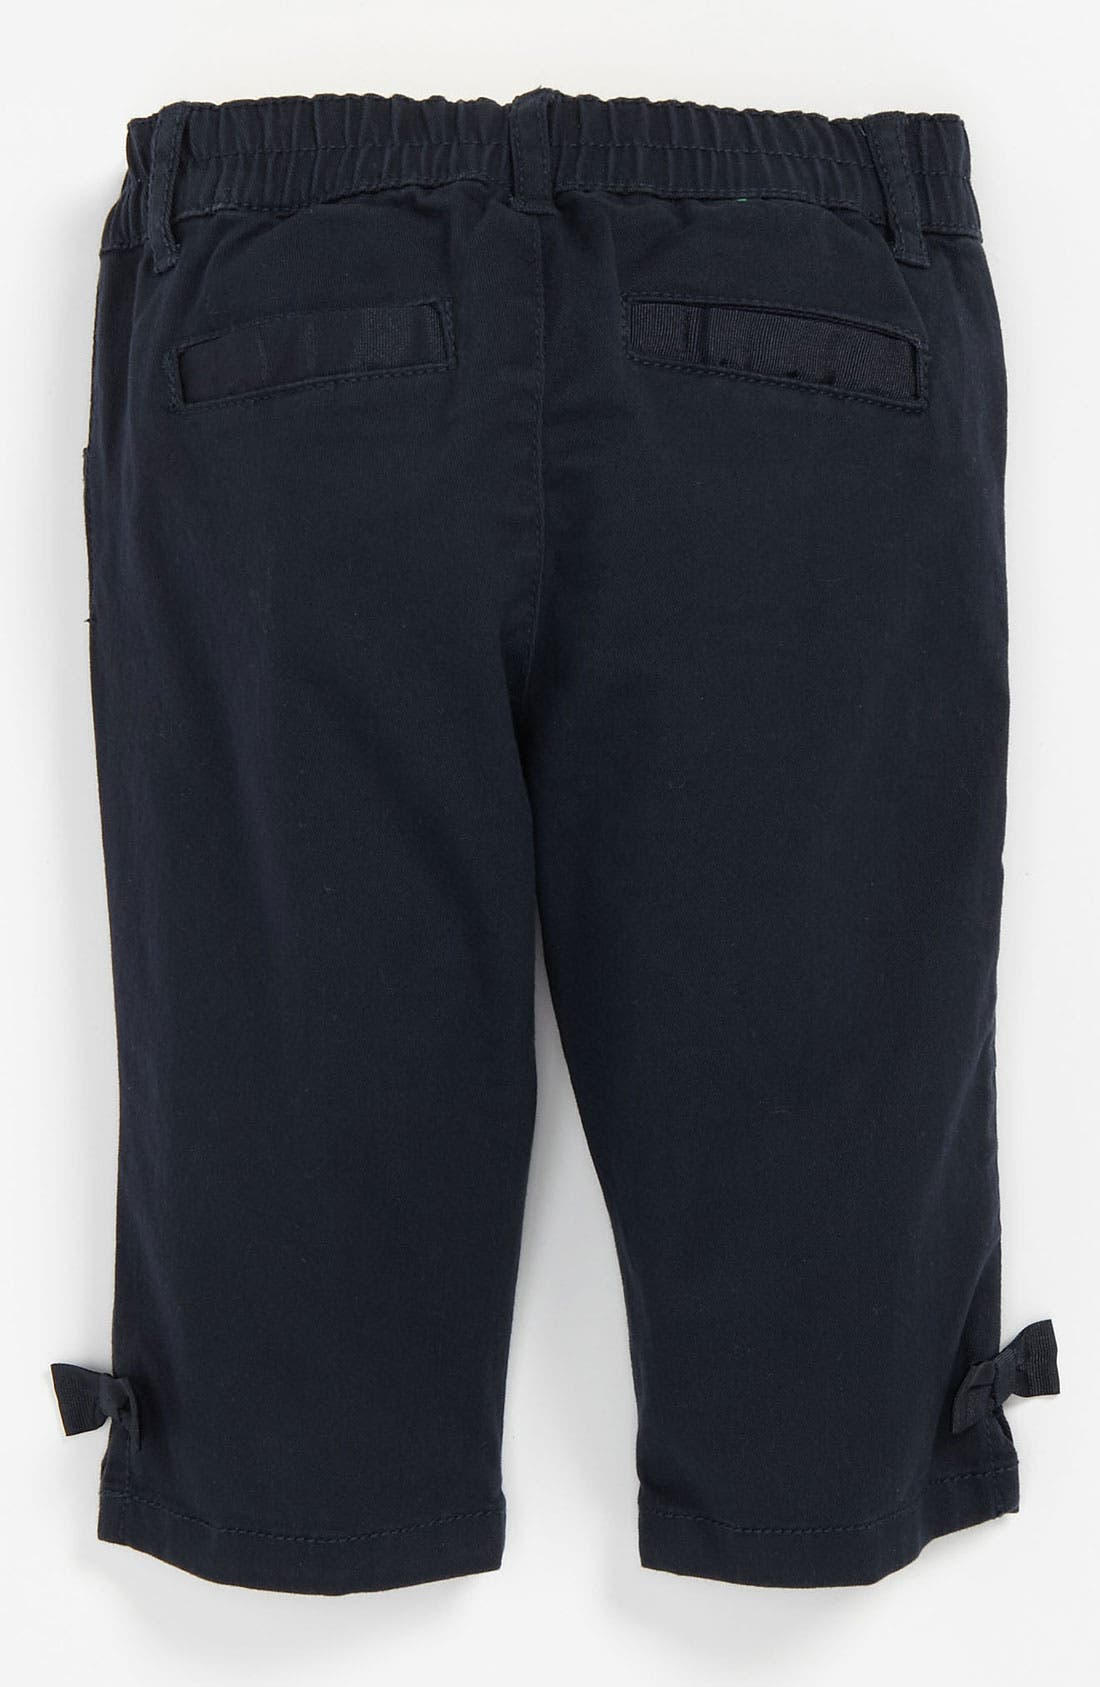 Main Image - United Colors of Benetton Kids Pants (Toddler)